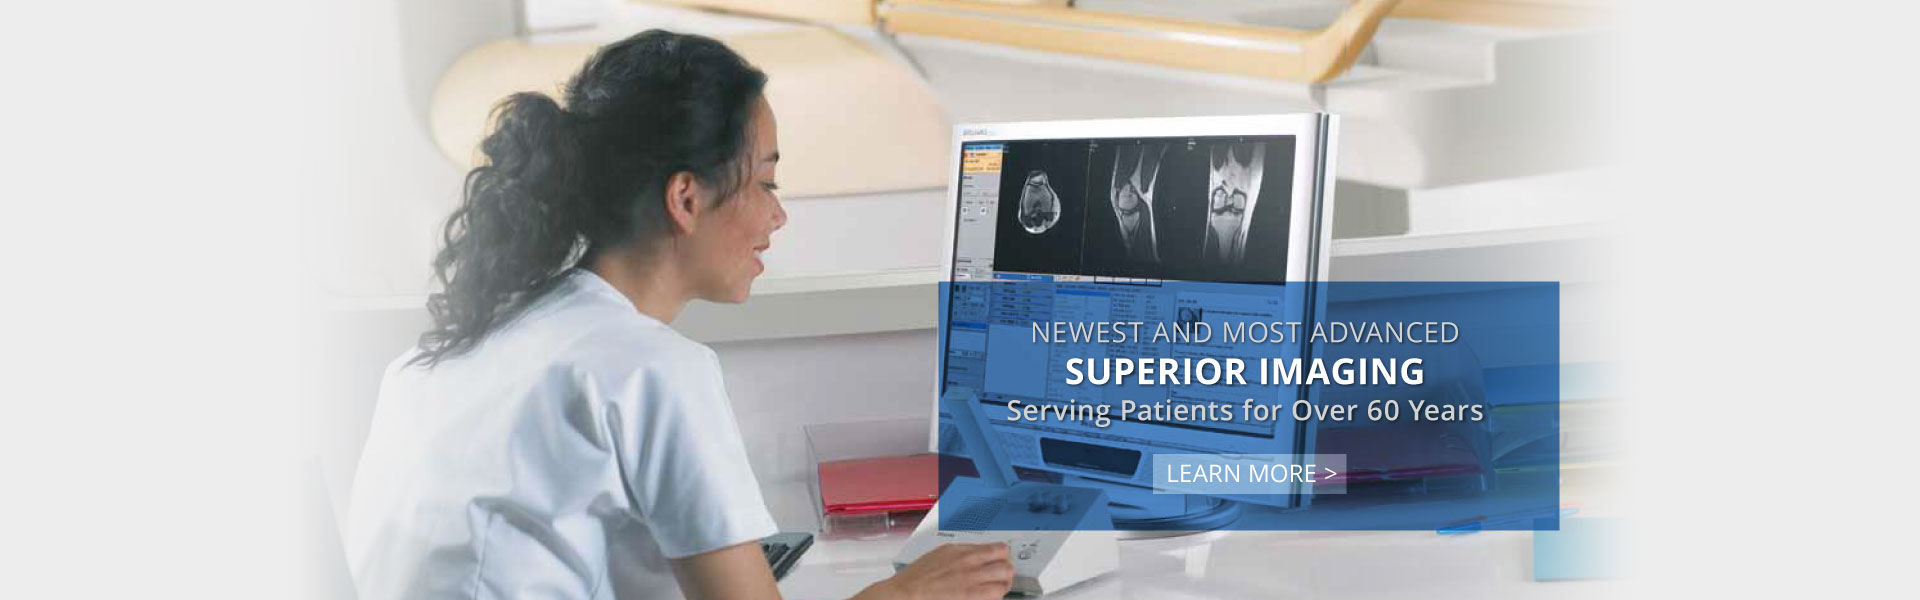 superior-imaging-pueblo-radiology